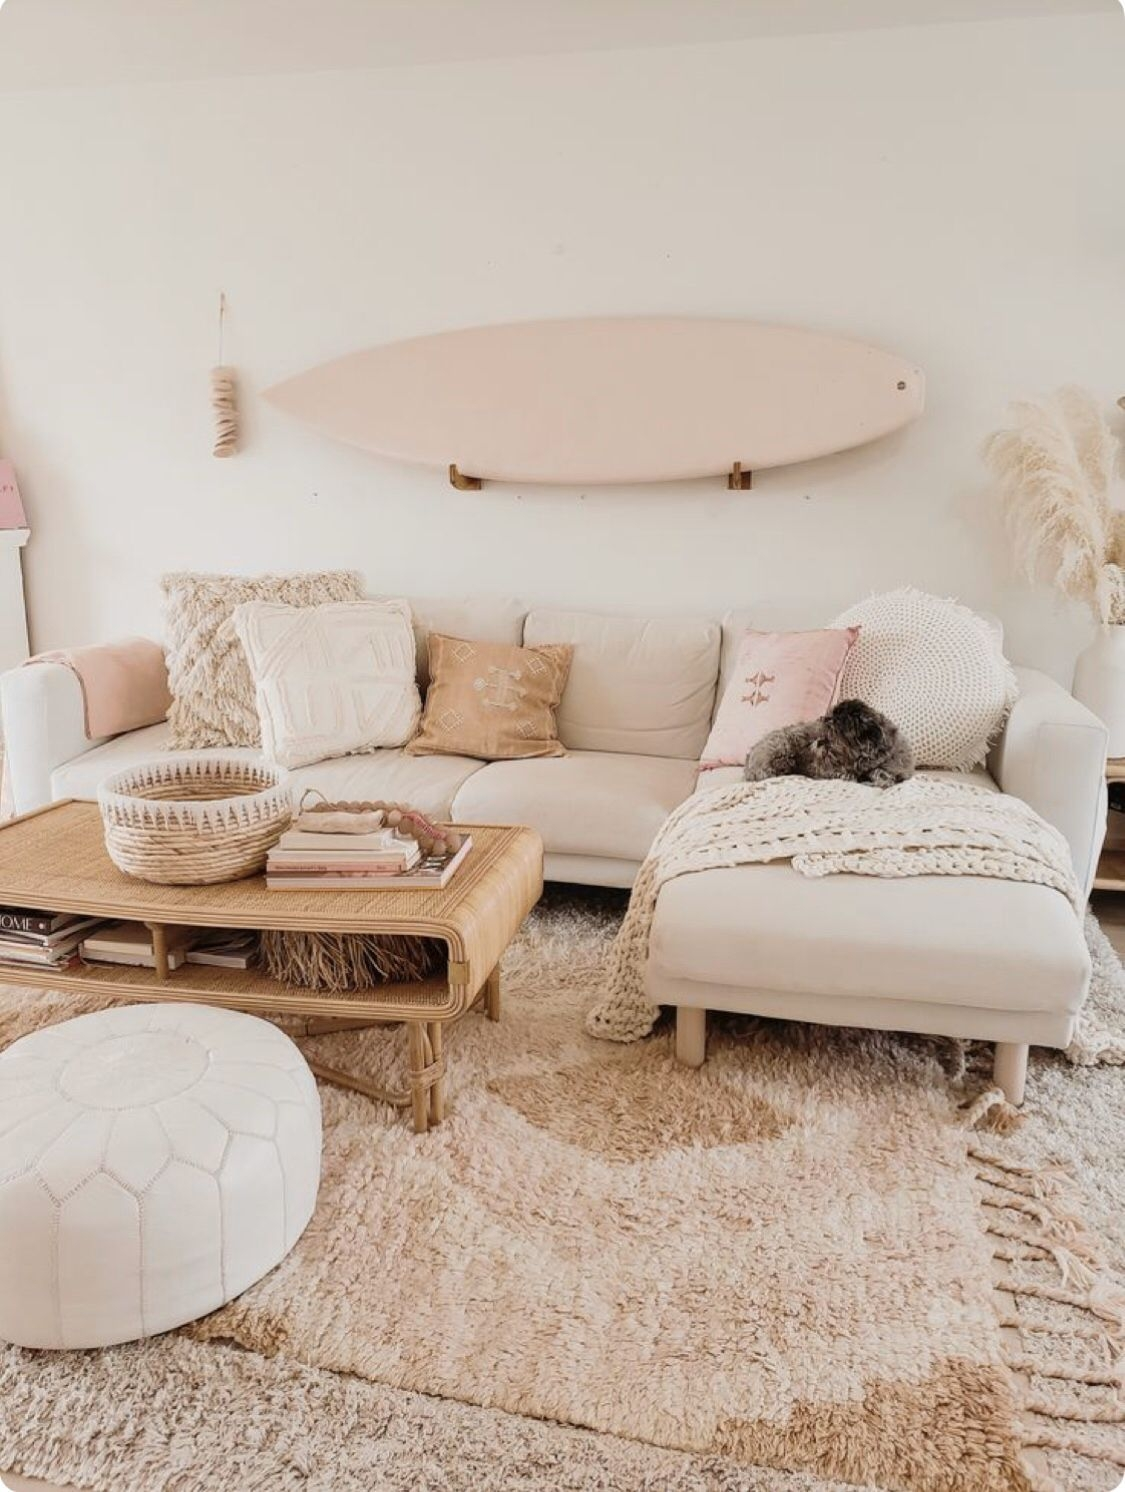 Impressive Boho Living Room Decor On A Budget Ideas Spaces Living Room Chairs On Delightful Surfer Girls Bedroom Ideas On Boho Living Room Decor On A Budget Ideas Spaces Living Room Chairs